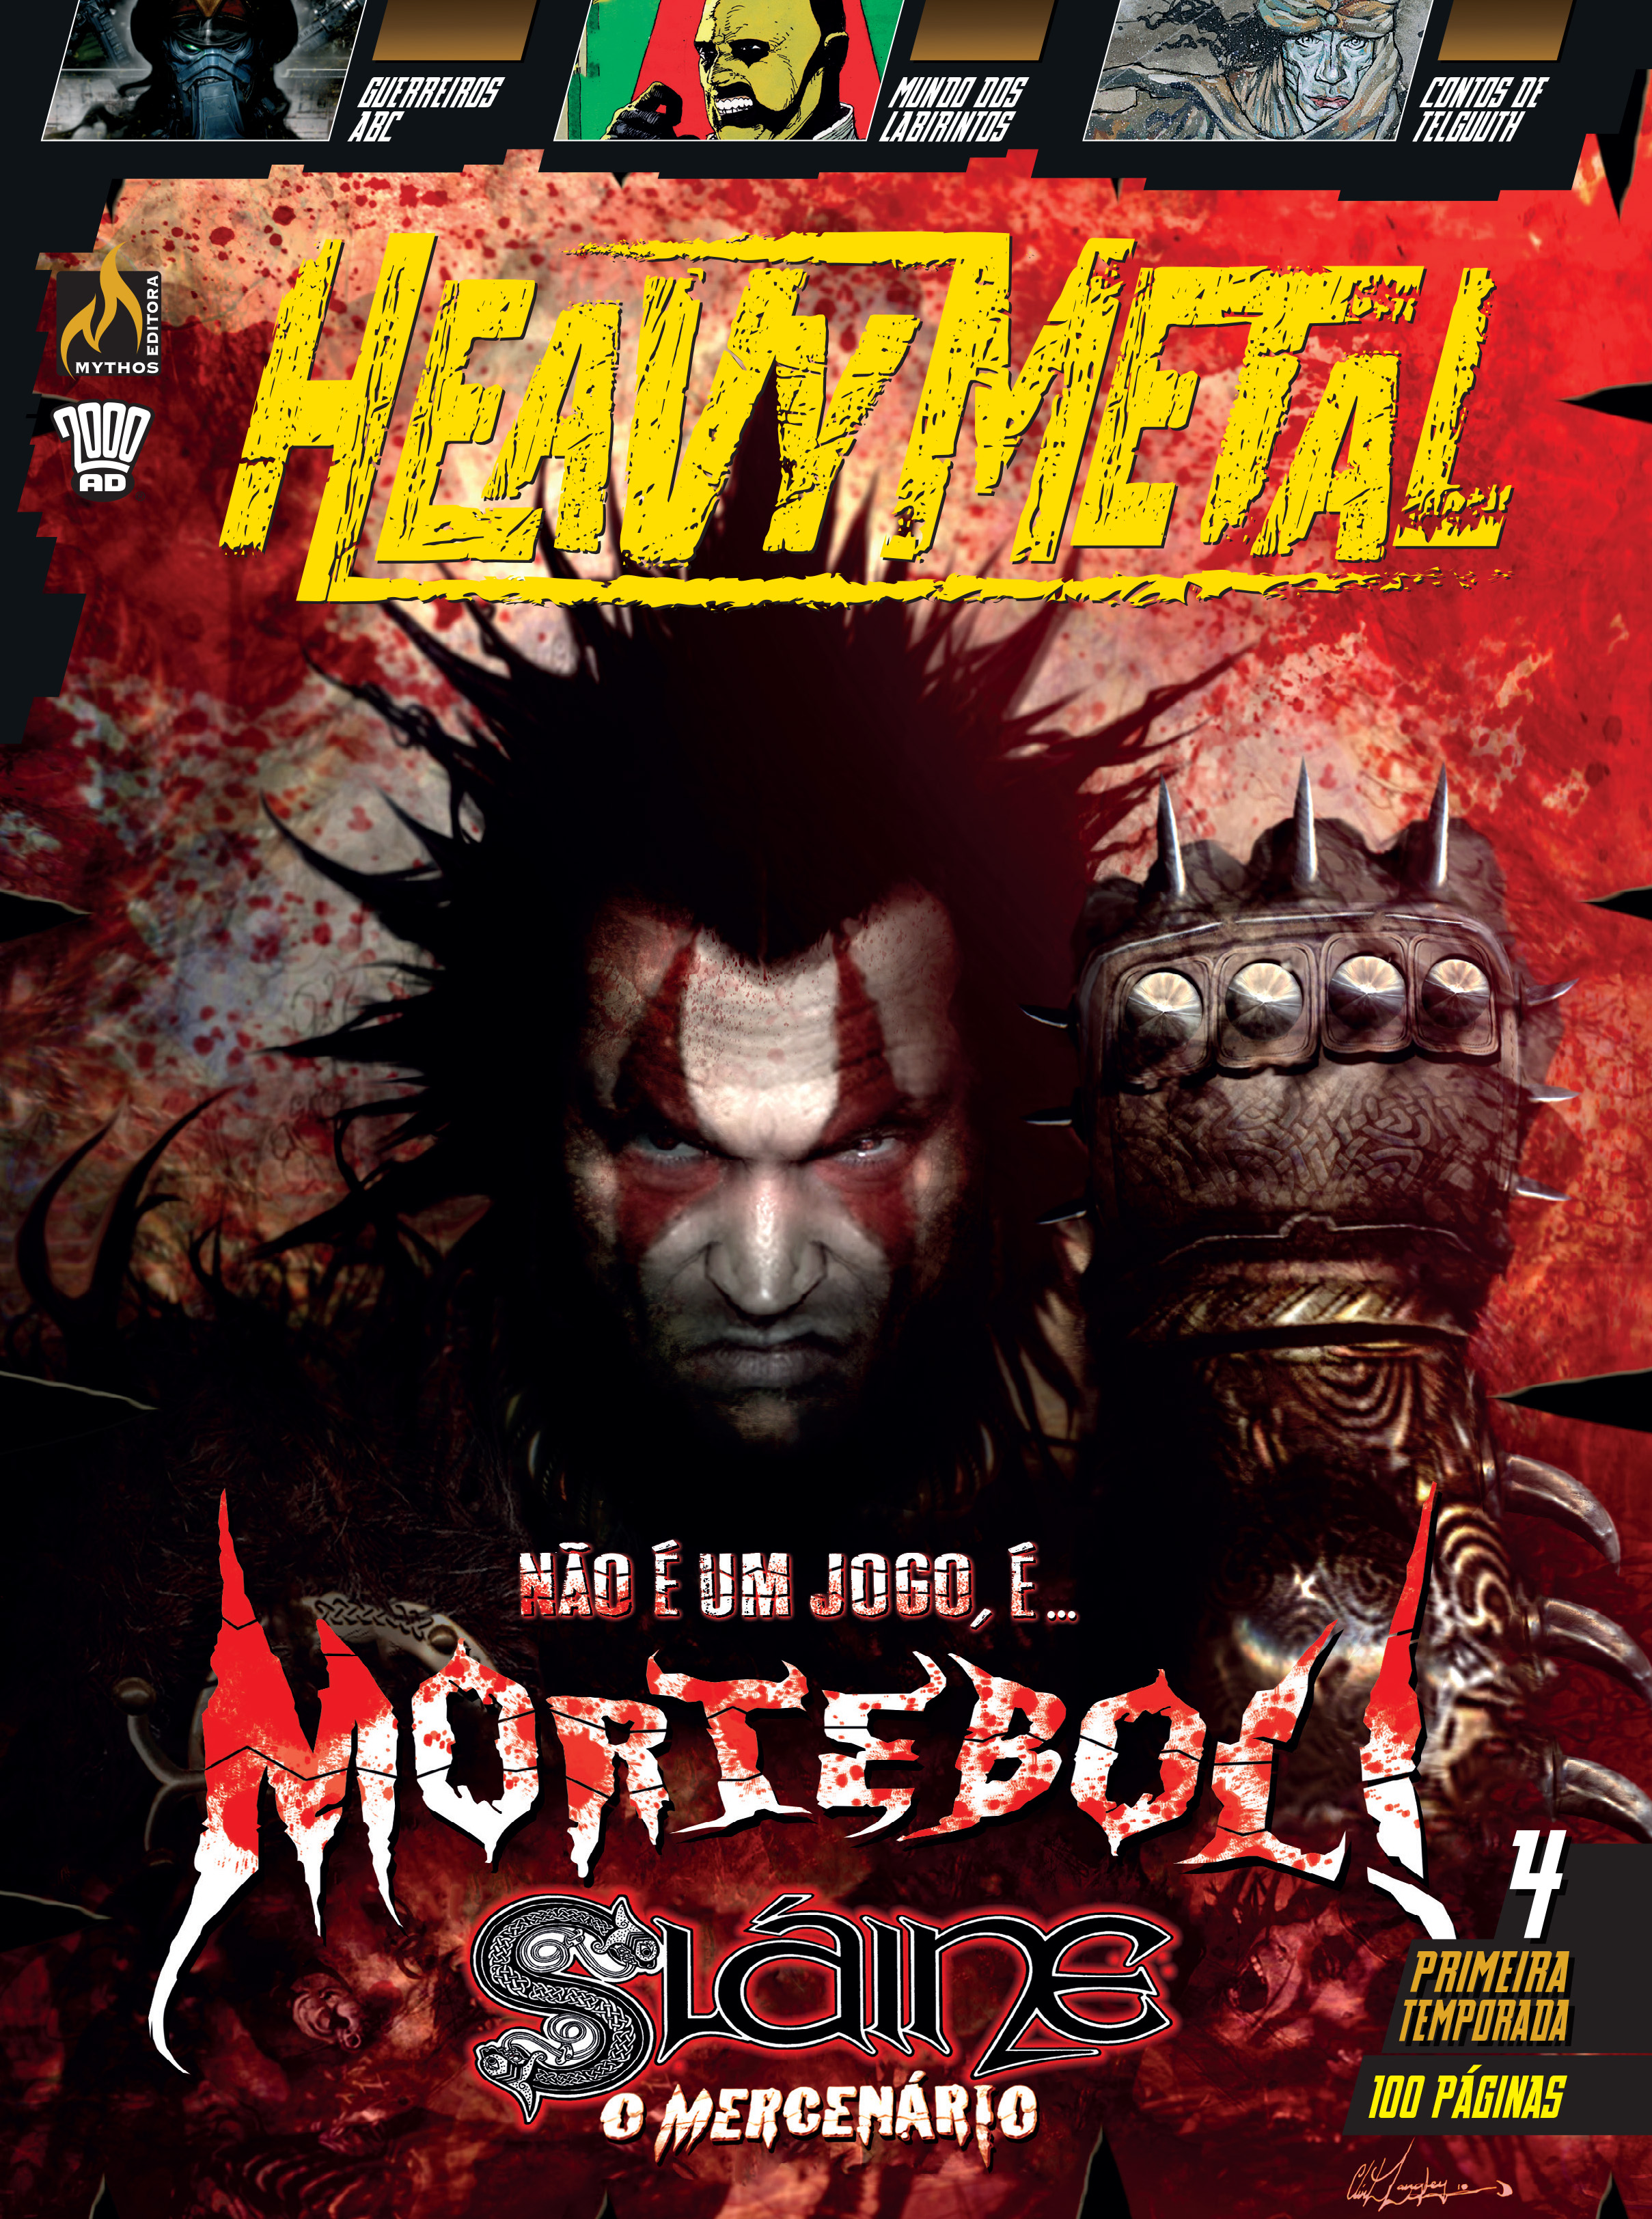 HEAVY METAL 1ª TEMPORADA - EPISÓDIO 4